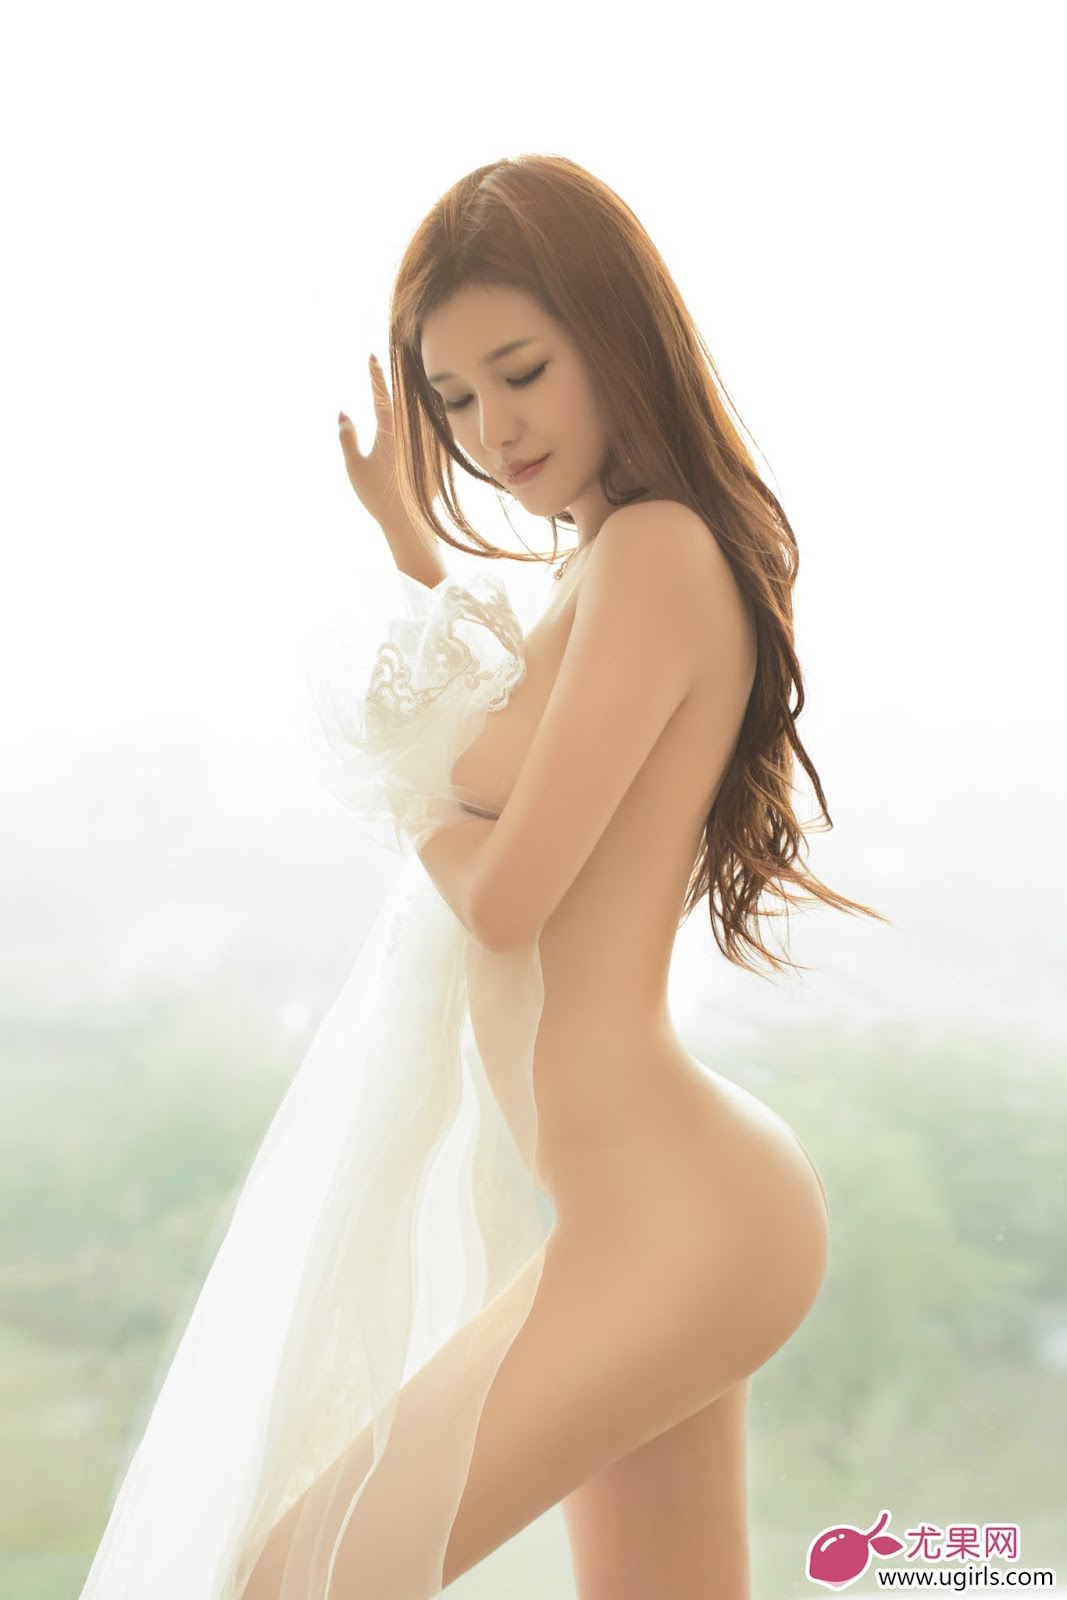 EZ0A0723%252B%25C2%25A6%25C2%25A6%252B - Ugirls No.016 Model 纯小希 (Chun Xiao Xi)